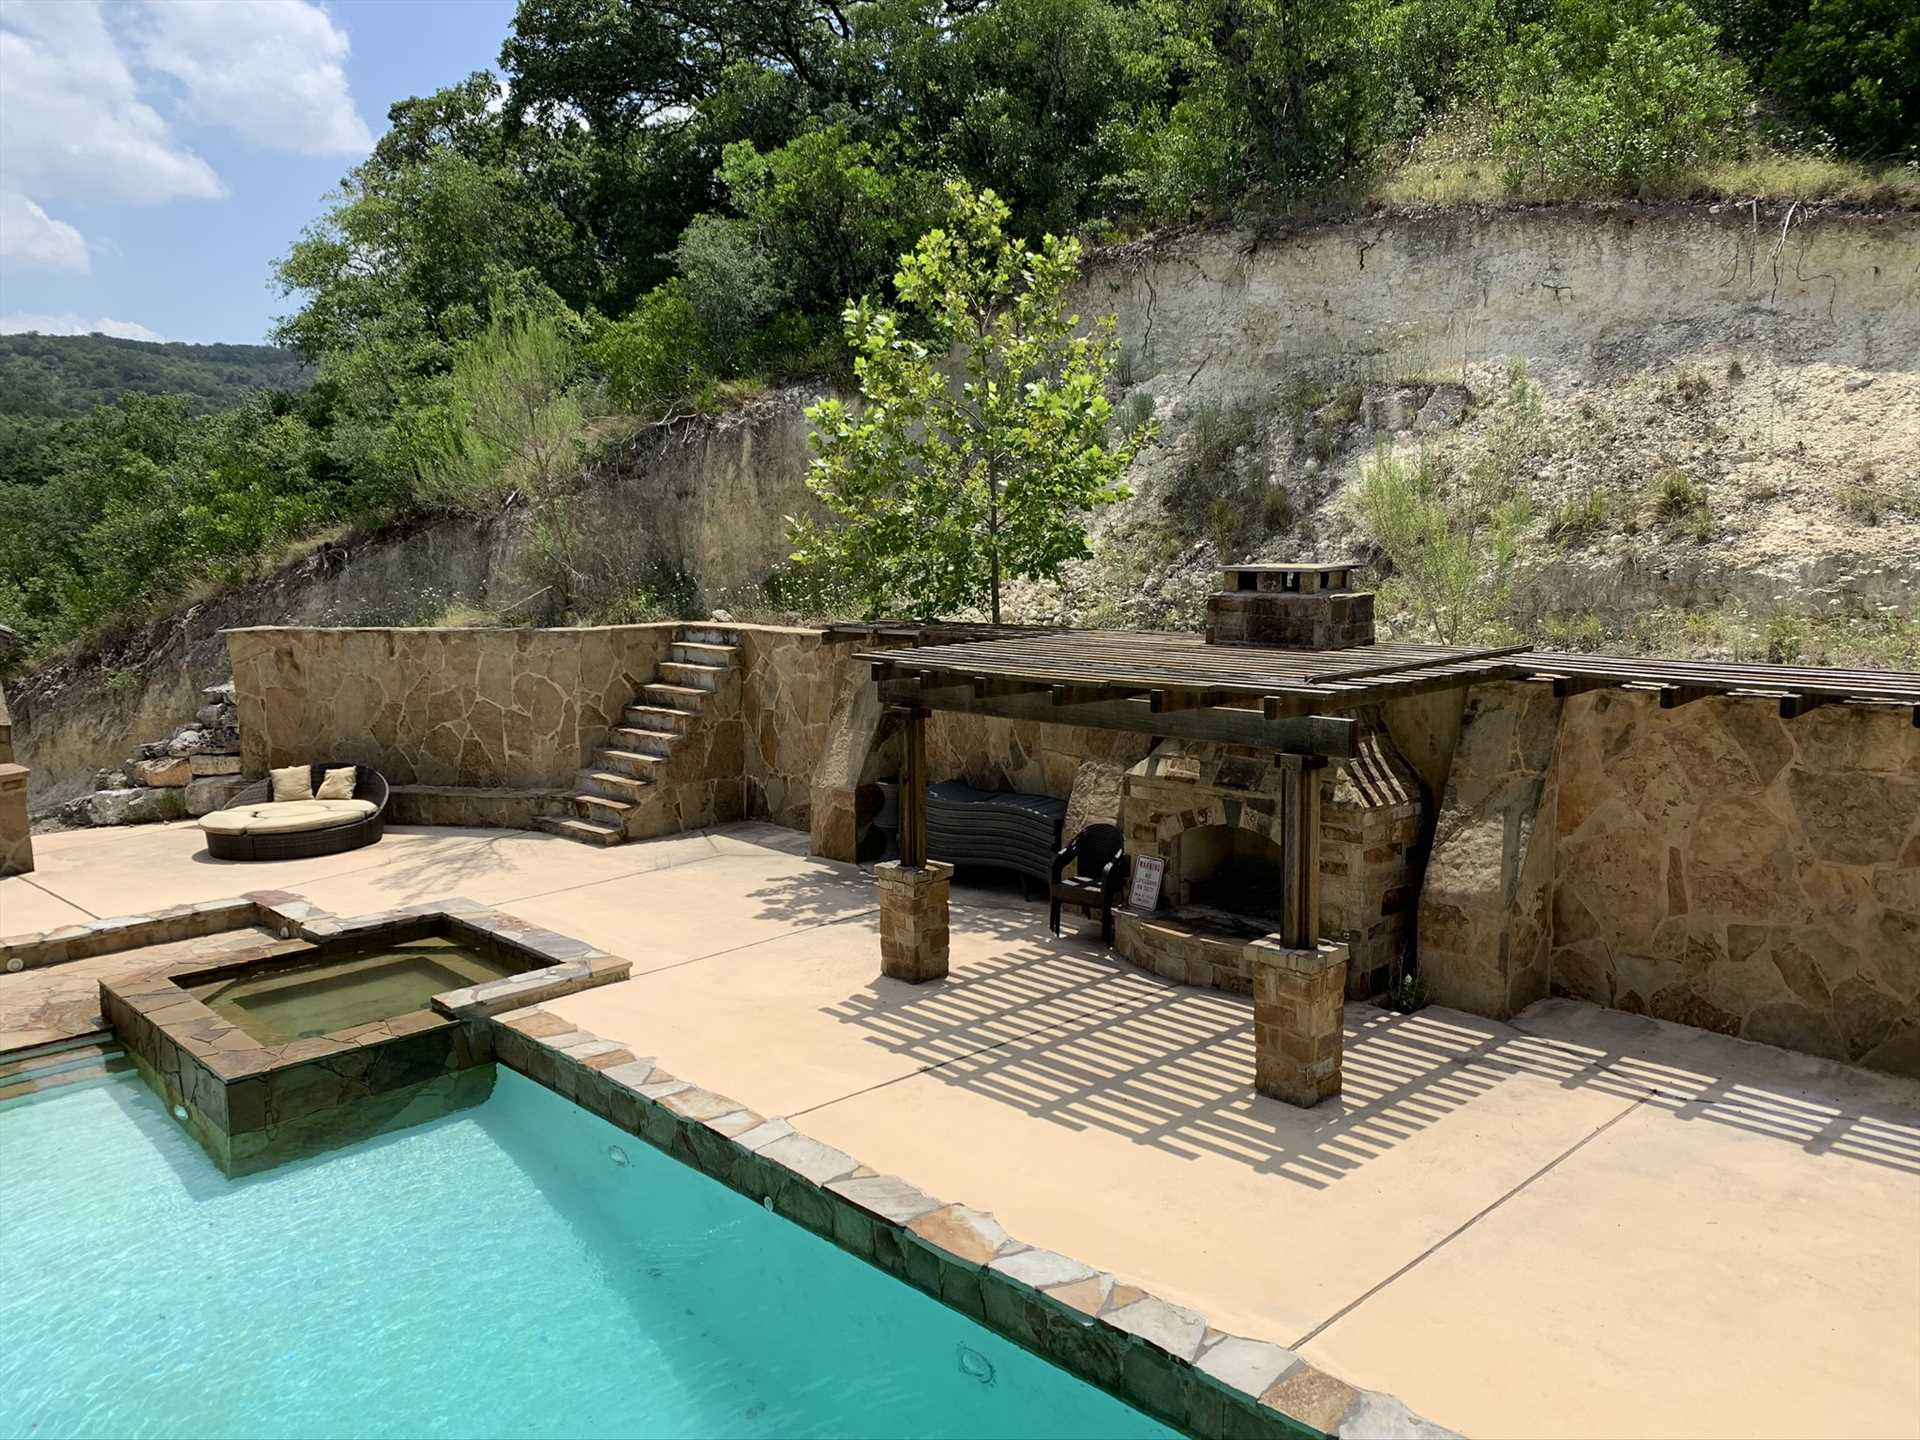 One more of the outdoor amenities here is the poolside fireplace! It adds a warm glow on cool nights.